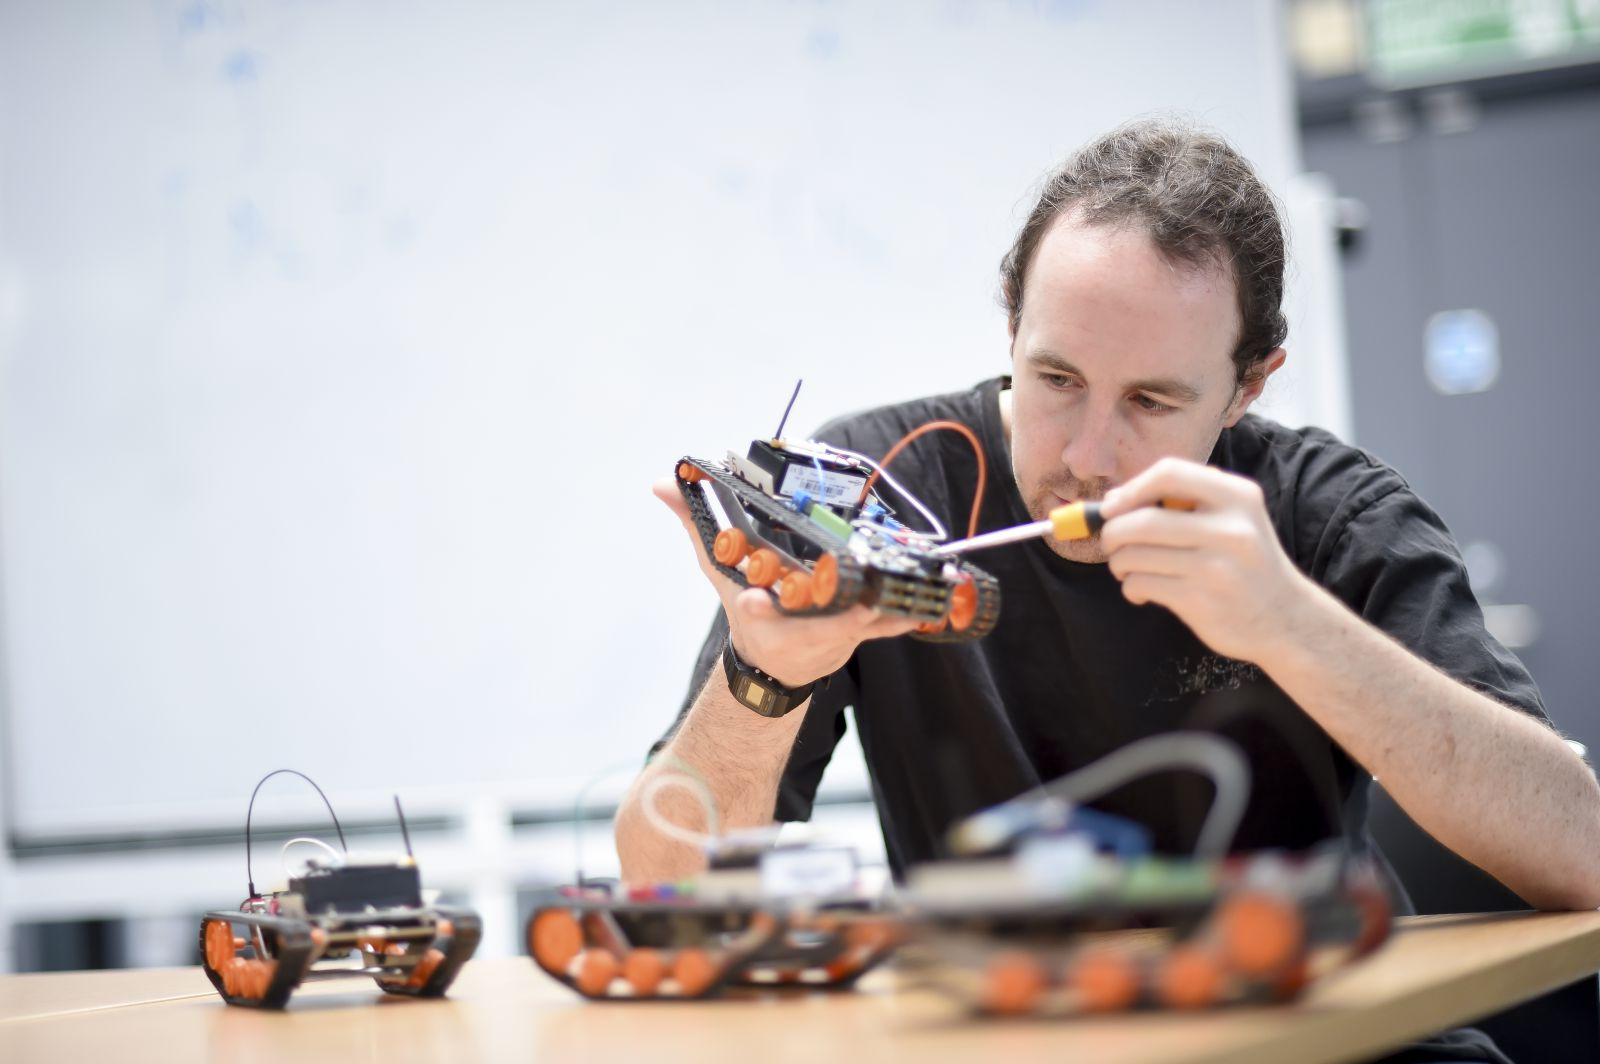 A PhD student works on mini-robots for his robotics project at the University of Sussex